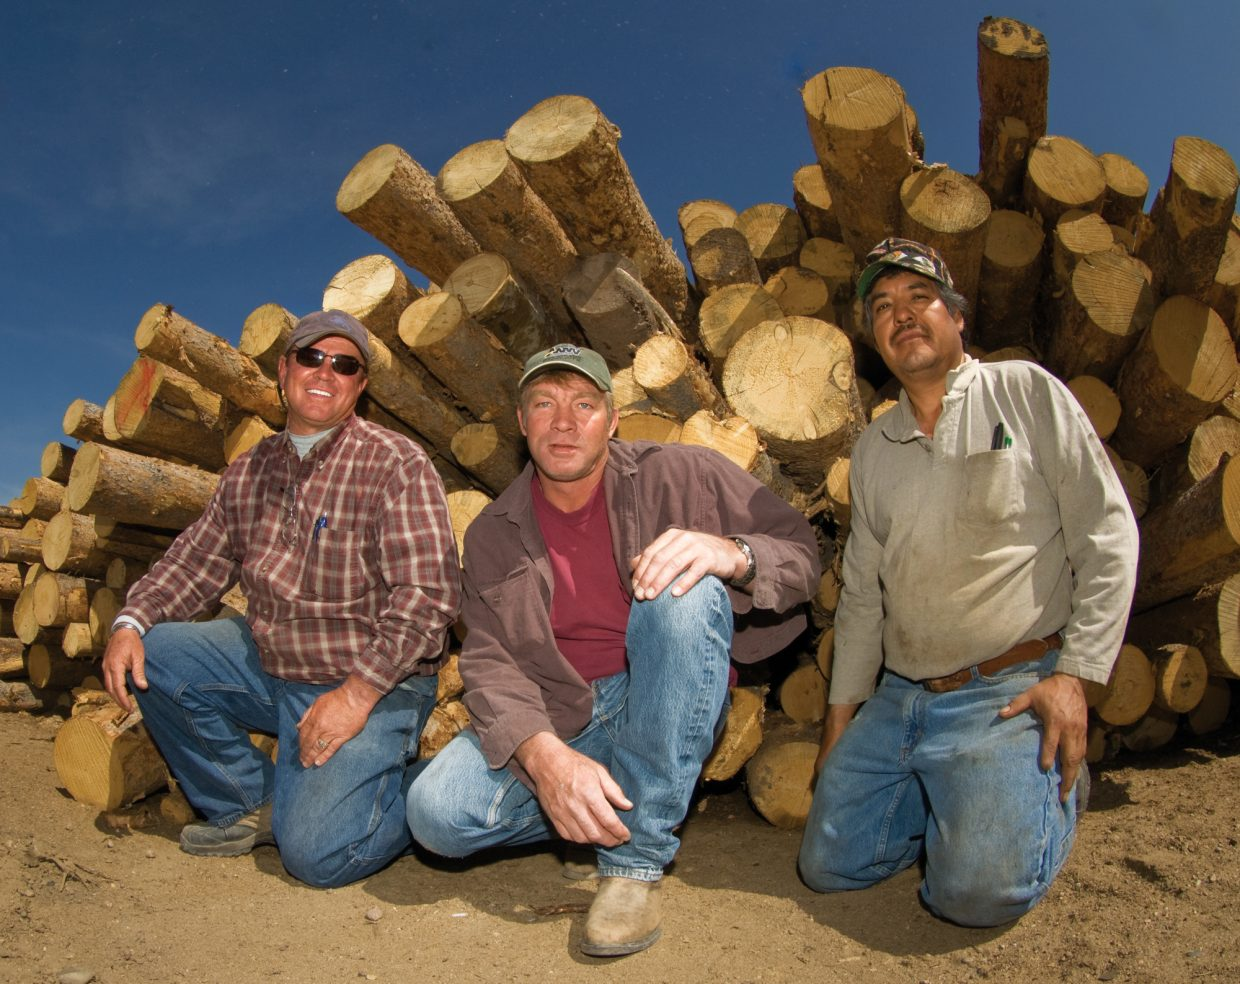 Billy Oerding, Mike Miller and Arcadio Rojas own and operate More Lumber near Milner. The owners hope the lumber mill can find an upside to the beetle epidemic that is devastating forests across the West.